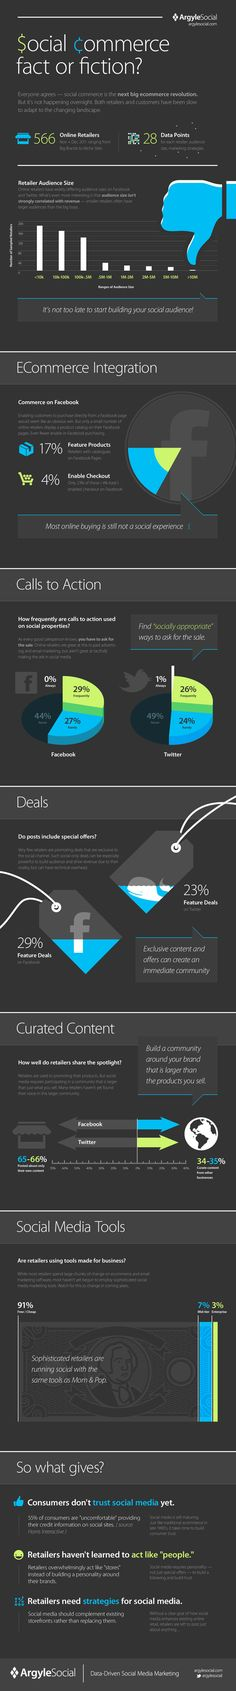 Social commerce fact or fiction